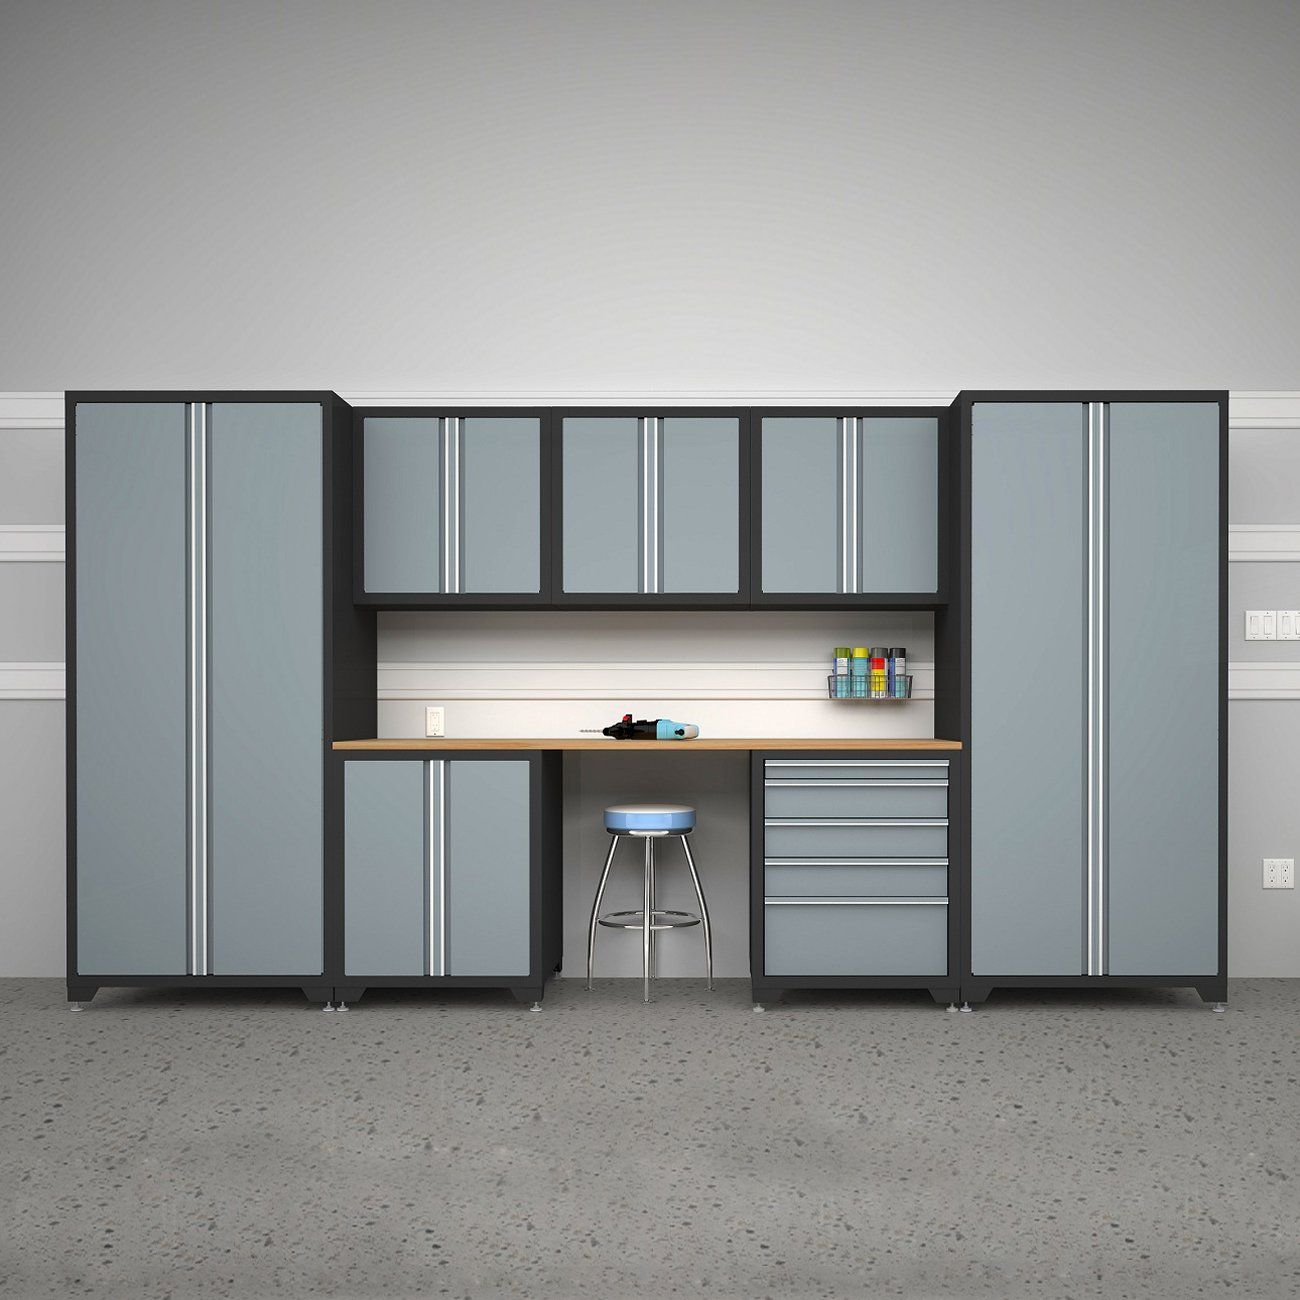 Garage Cabinets Overstock Lowe 39s 43garage 43cabinets 43 43winter 43wish 43list 43sweepstakes